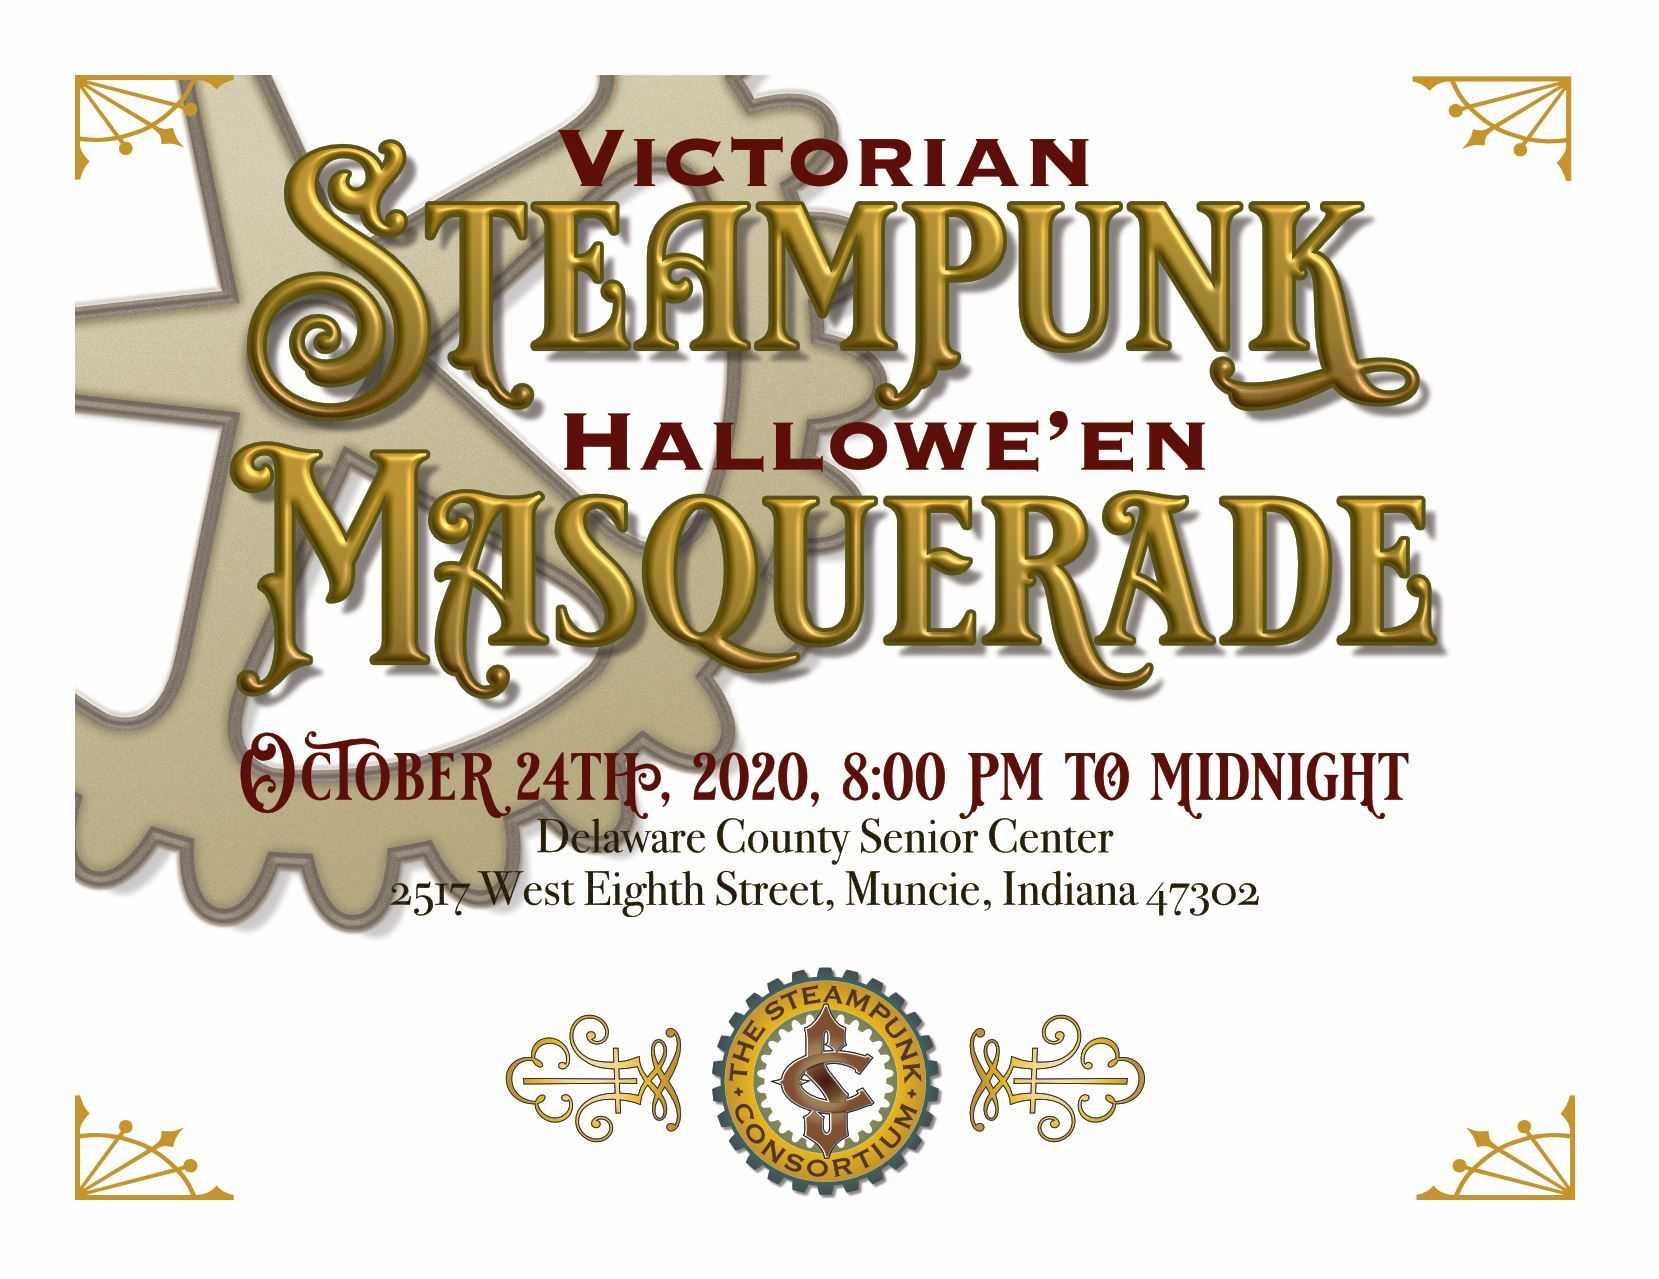 Halloween 2020 Muncie Indiana Masquerade 2020   We will be hosting a Masquerade in October 2020